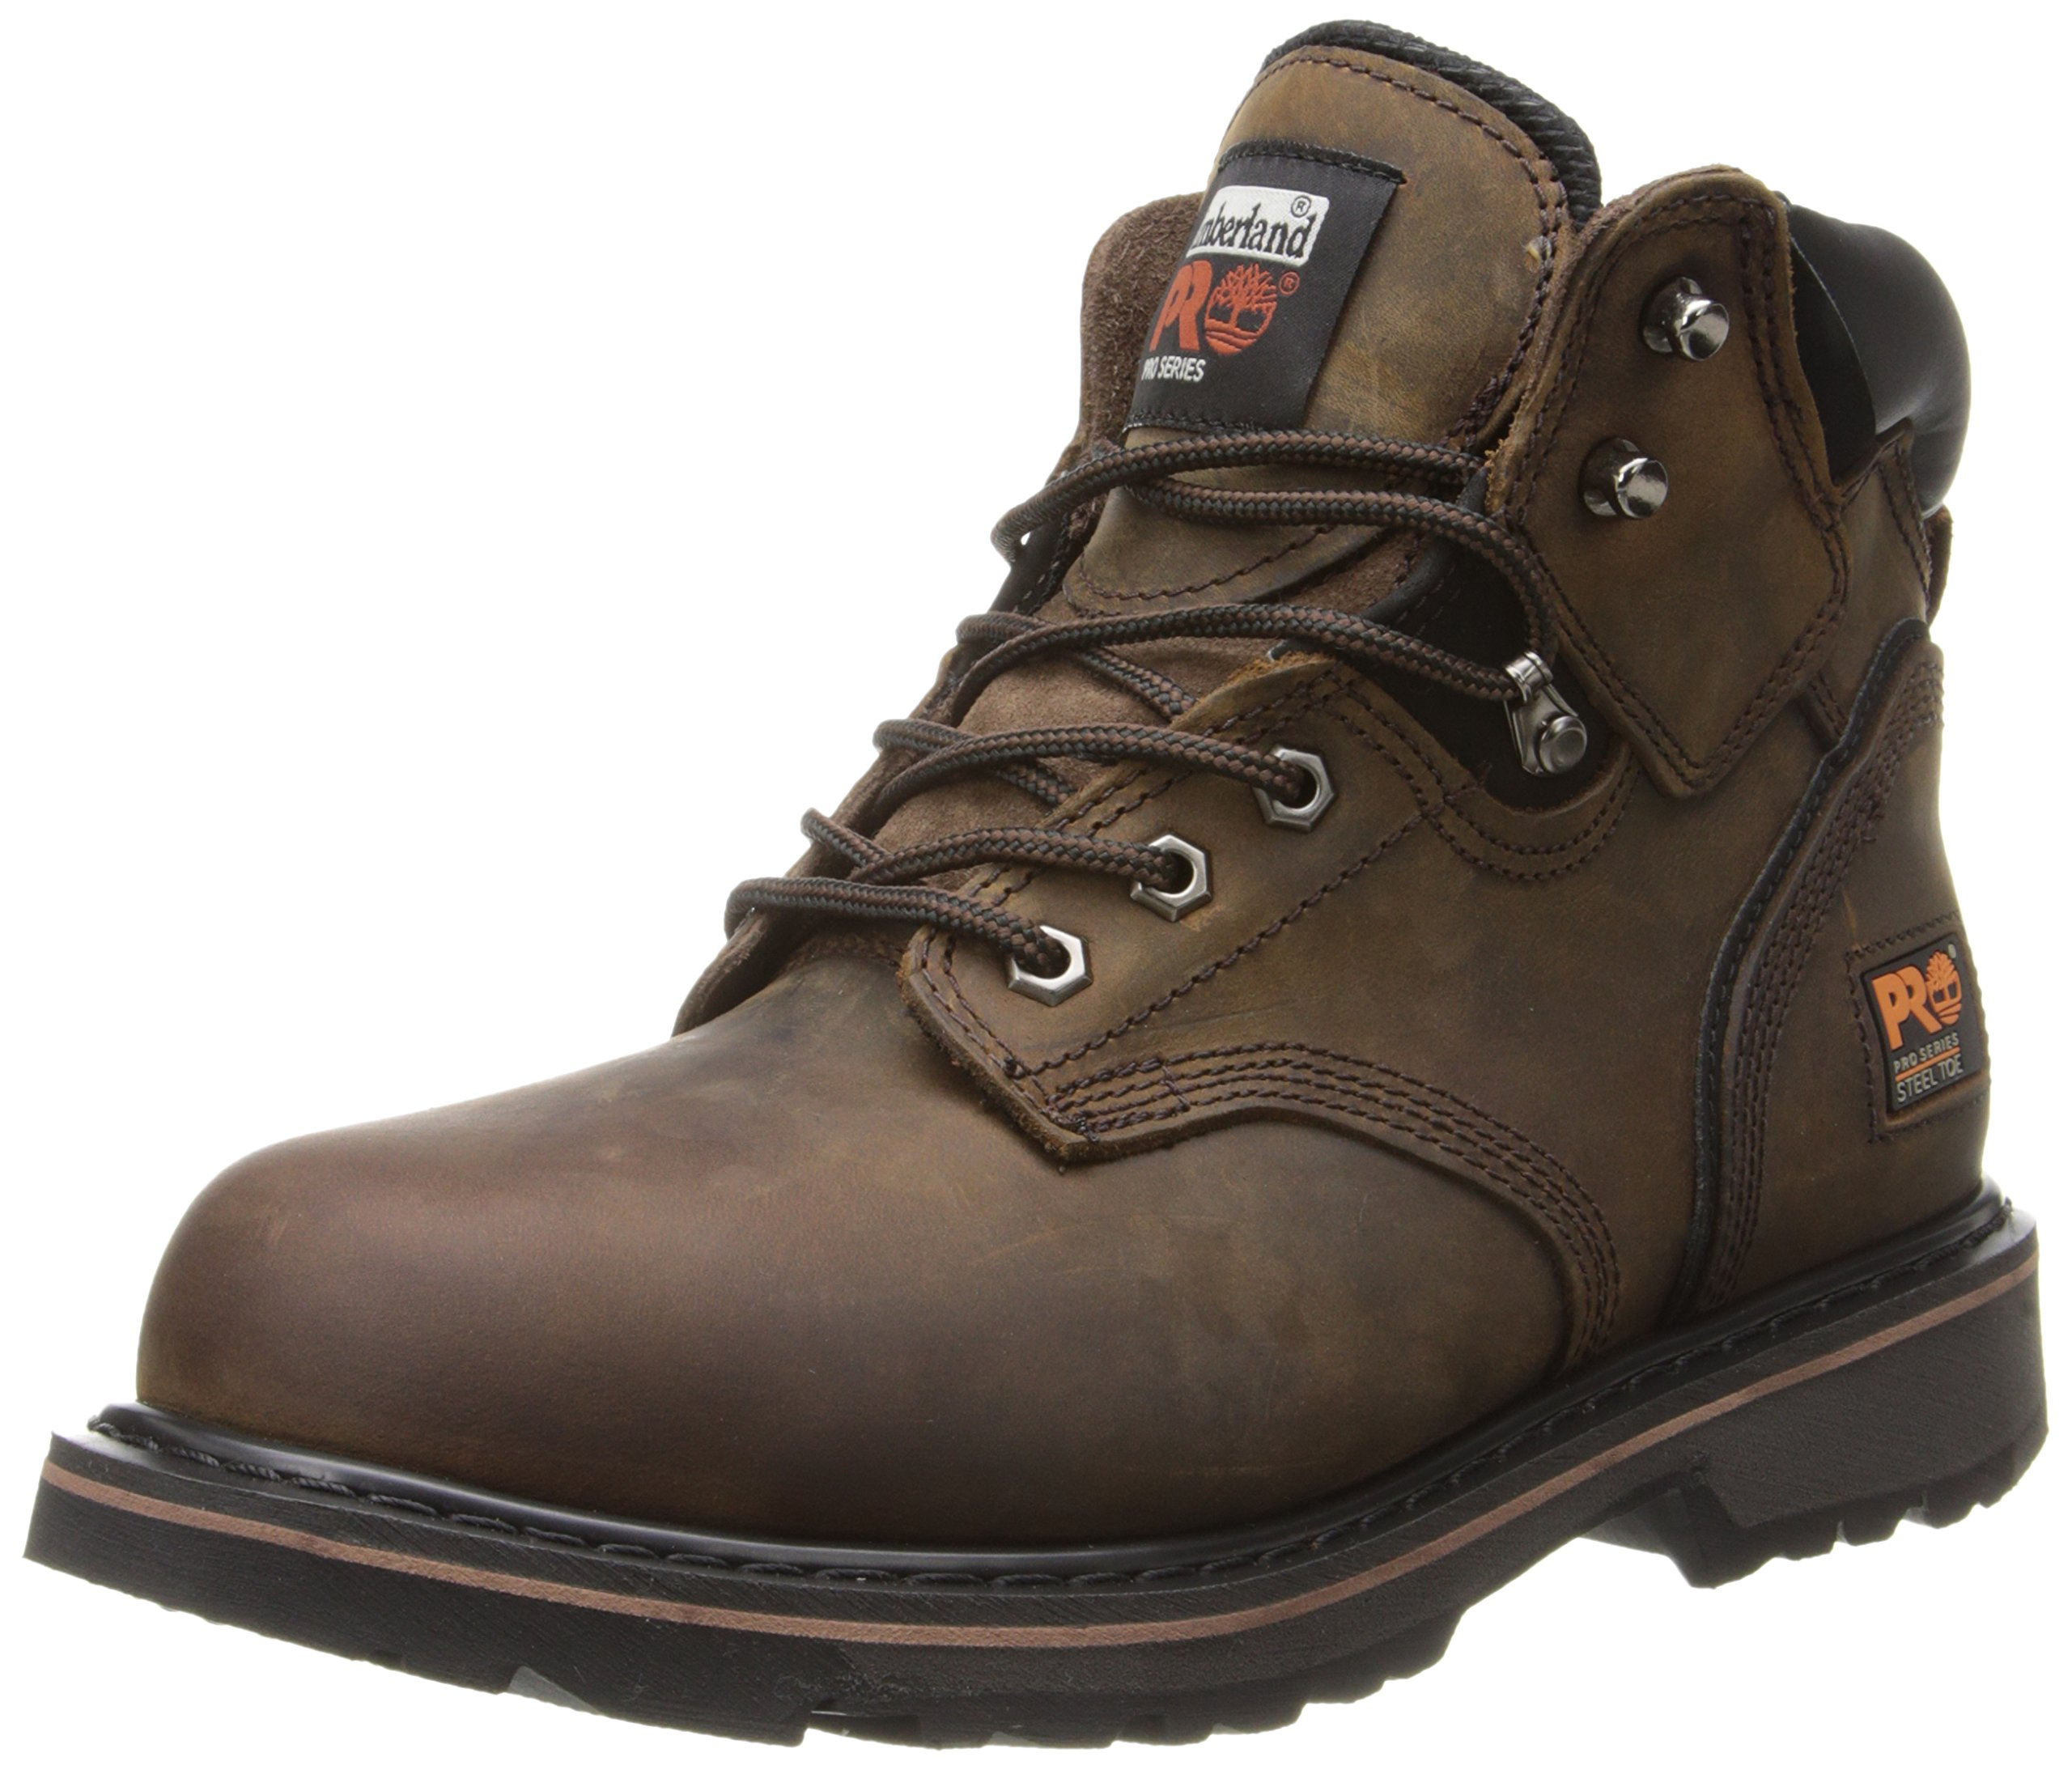 Timberland PRO Men's Pitboss 6'' Steel-Toe Boot, Brown , 12 EE - Wide by Timberland PRO